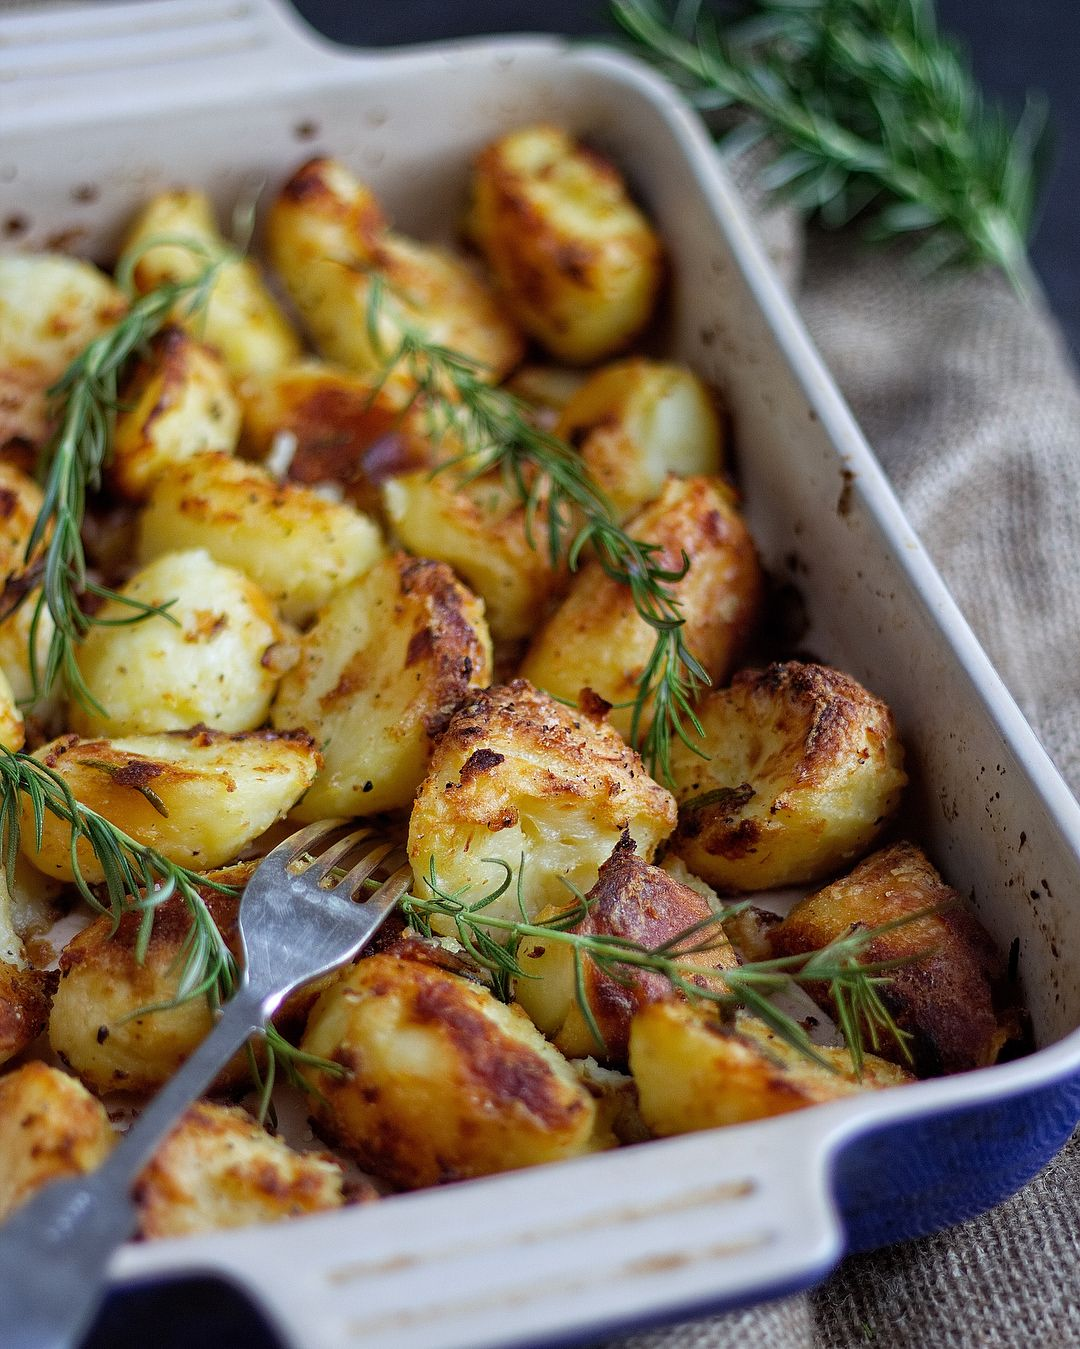 You know it's Sunday when you wake up and the first thing you think about is these Rosemary Infused Roast Potatoes 🥔😂 recipe in bio! - ugnsrostad potatis rosmarin vitlök olivolja/smör